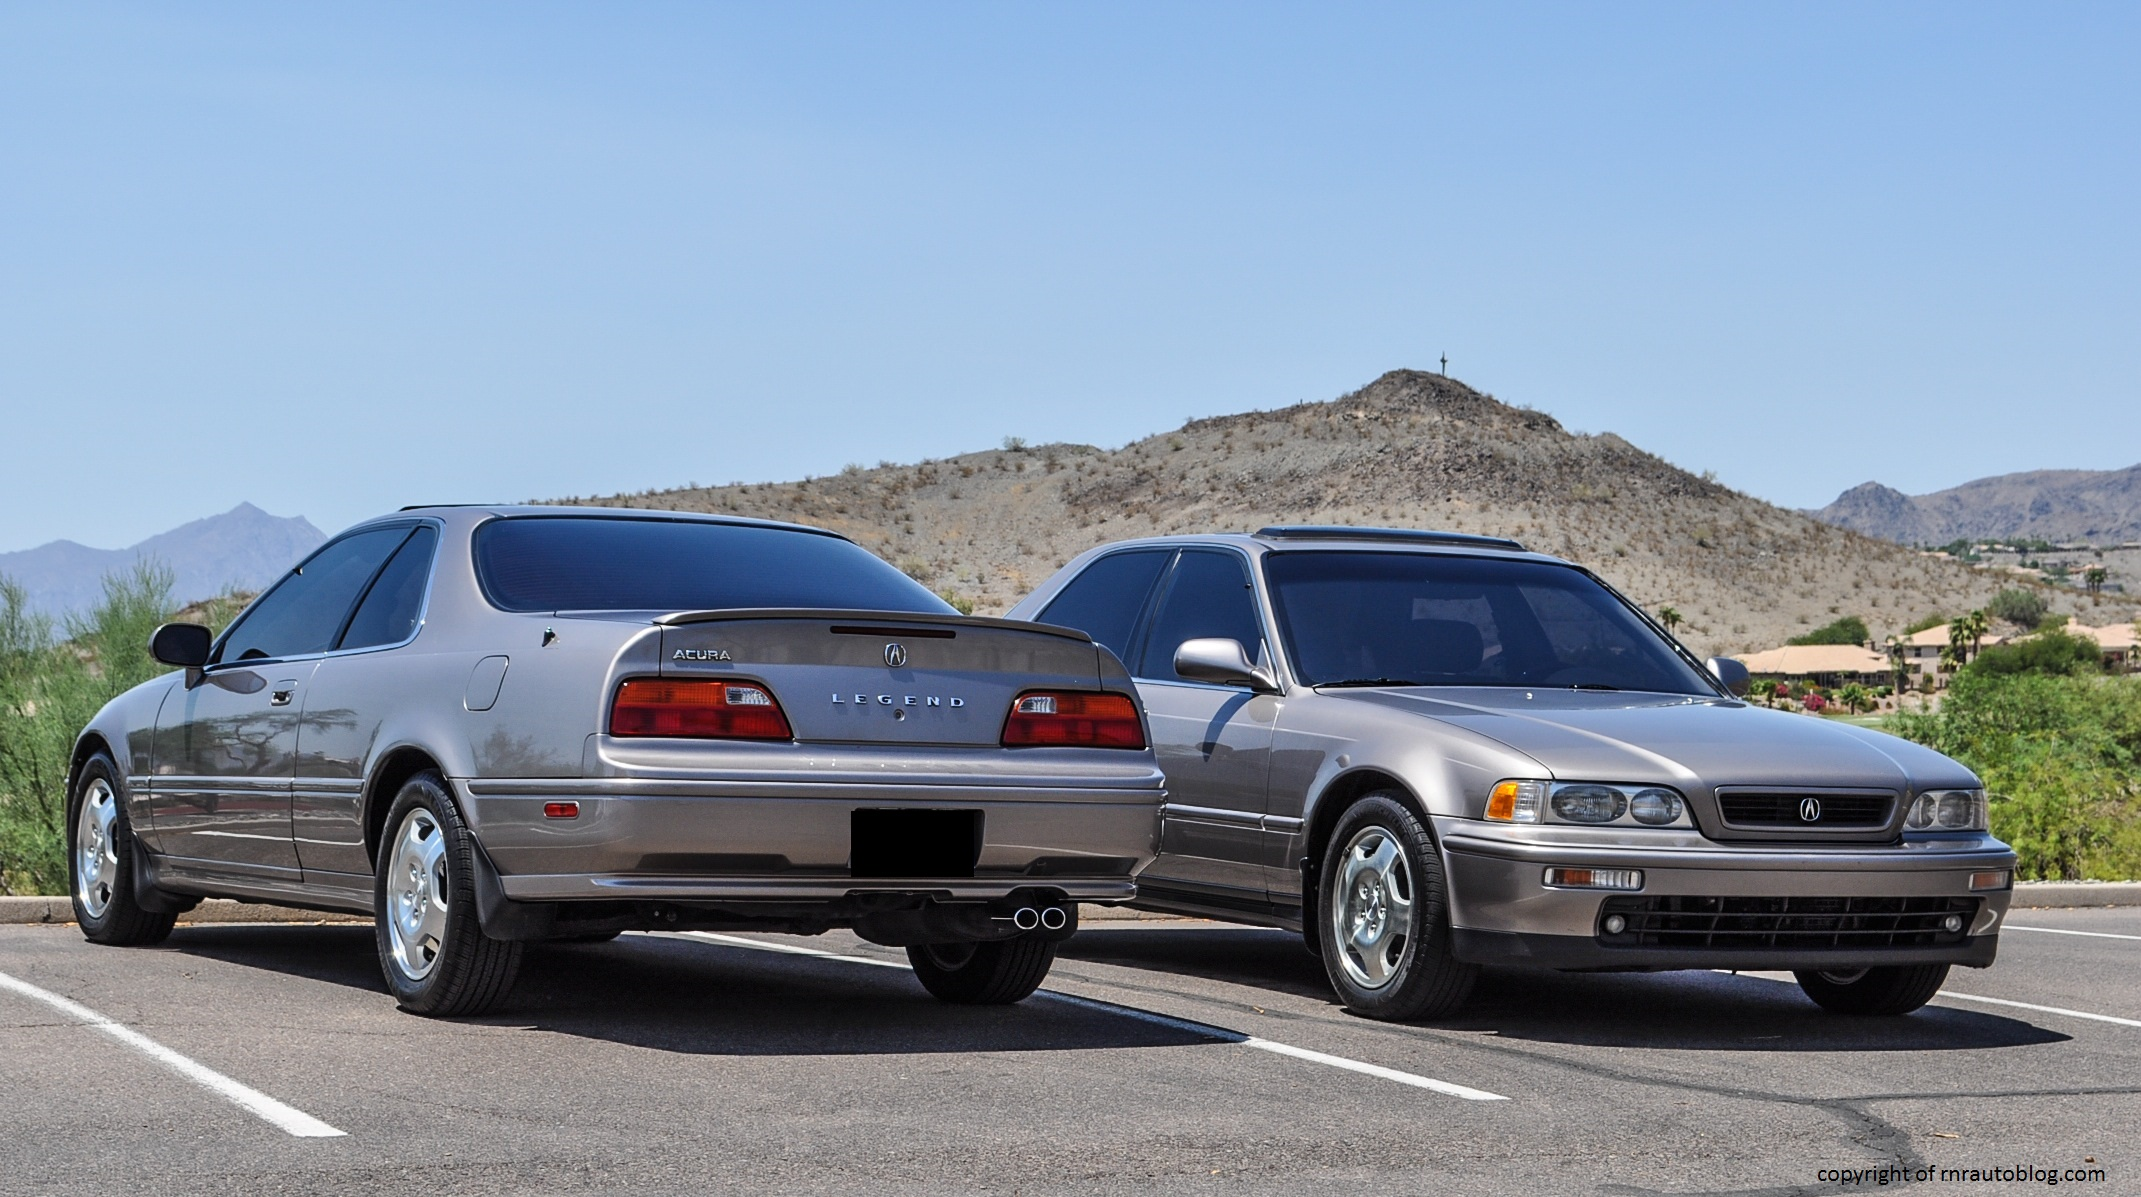 1994 acura legend ls coupe and gs sedan review rnr automotive blog